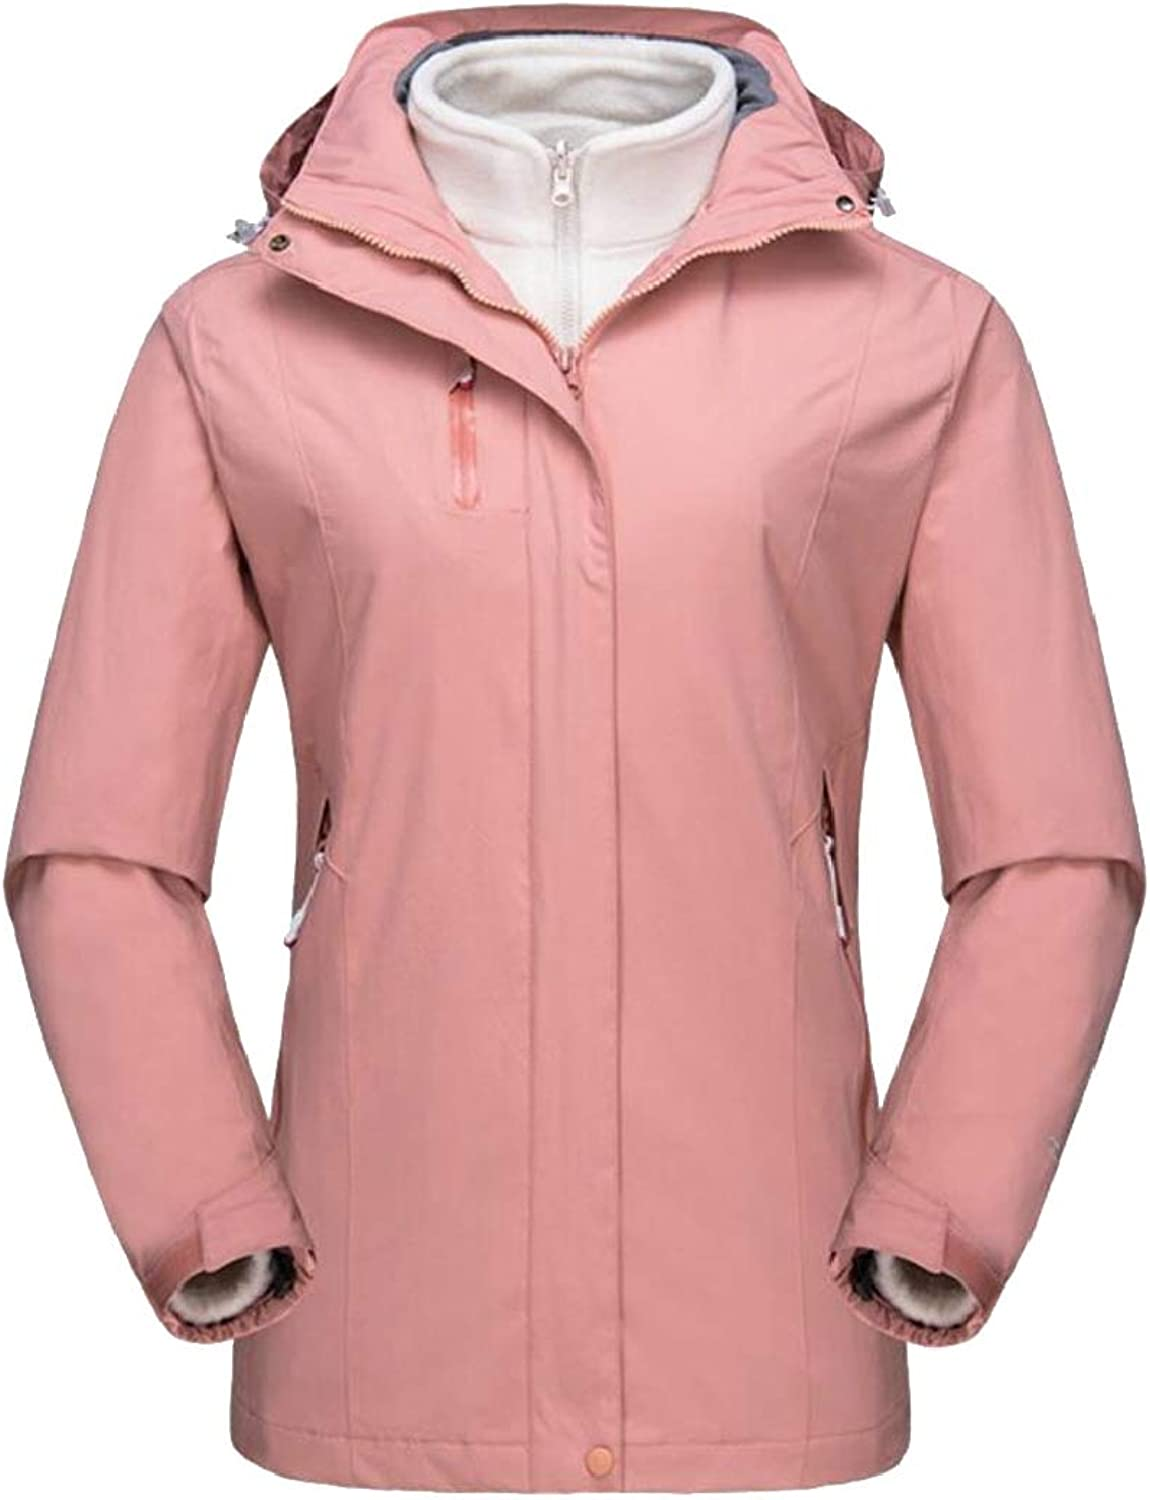 XQS Womens Outerwear Thicken Hoodie Plus Size Windproof 3 in 1 Jacket